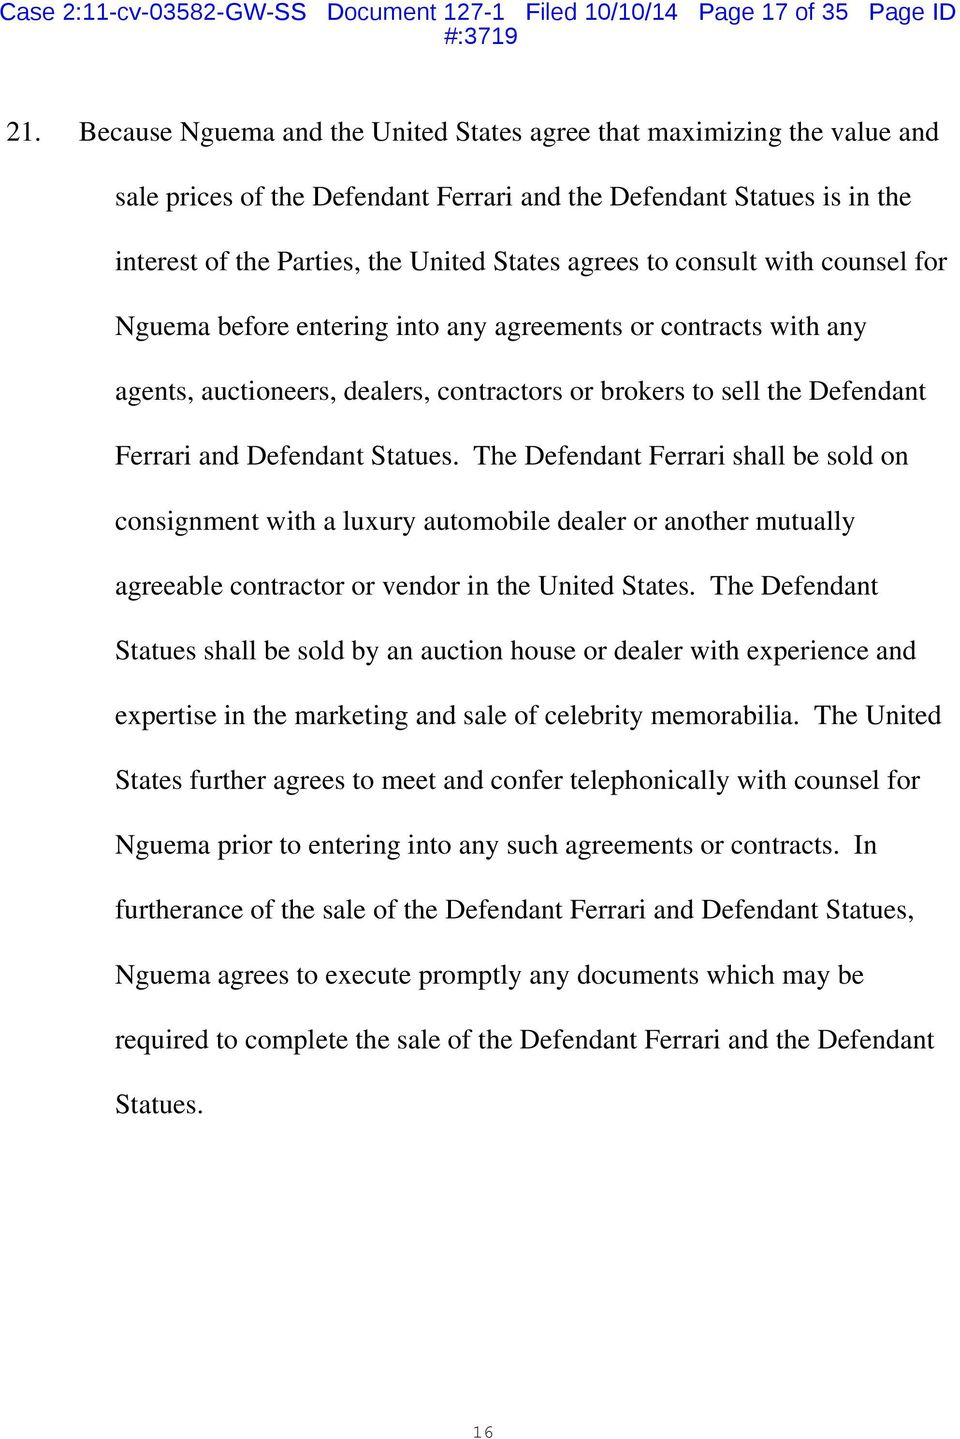 consult with counsel for Nguema before entering into any agreements or contracts with any agents, auctioneers, dealers, contractors or brokers to sell the Defendant Ferrari and Defendant Statues.